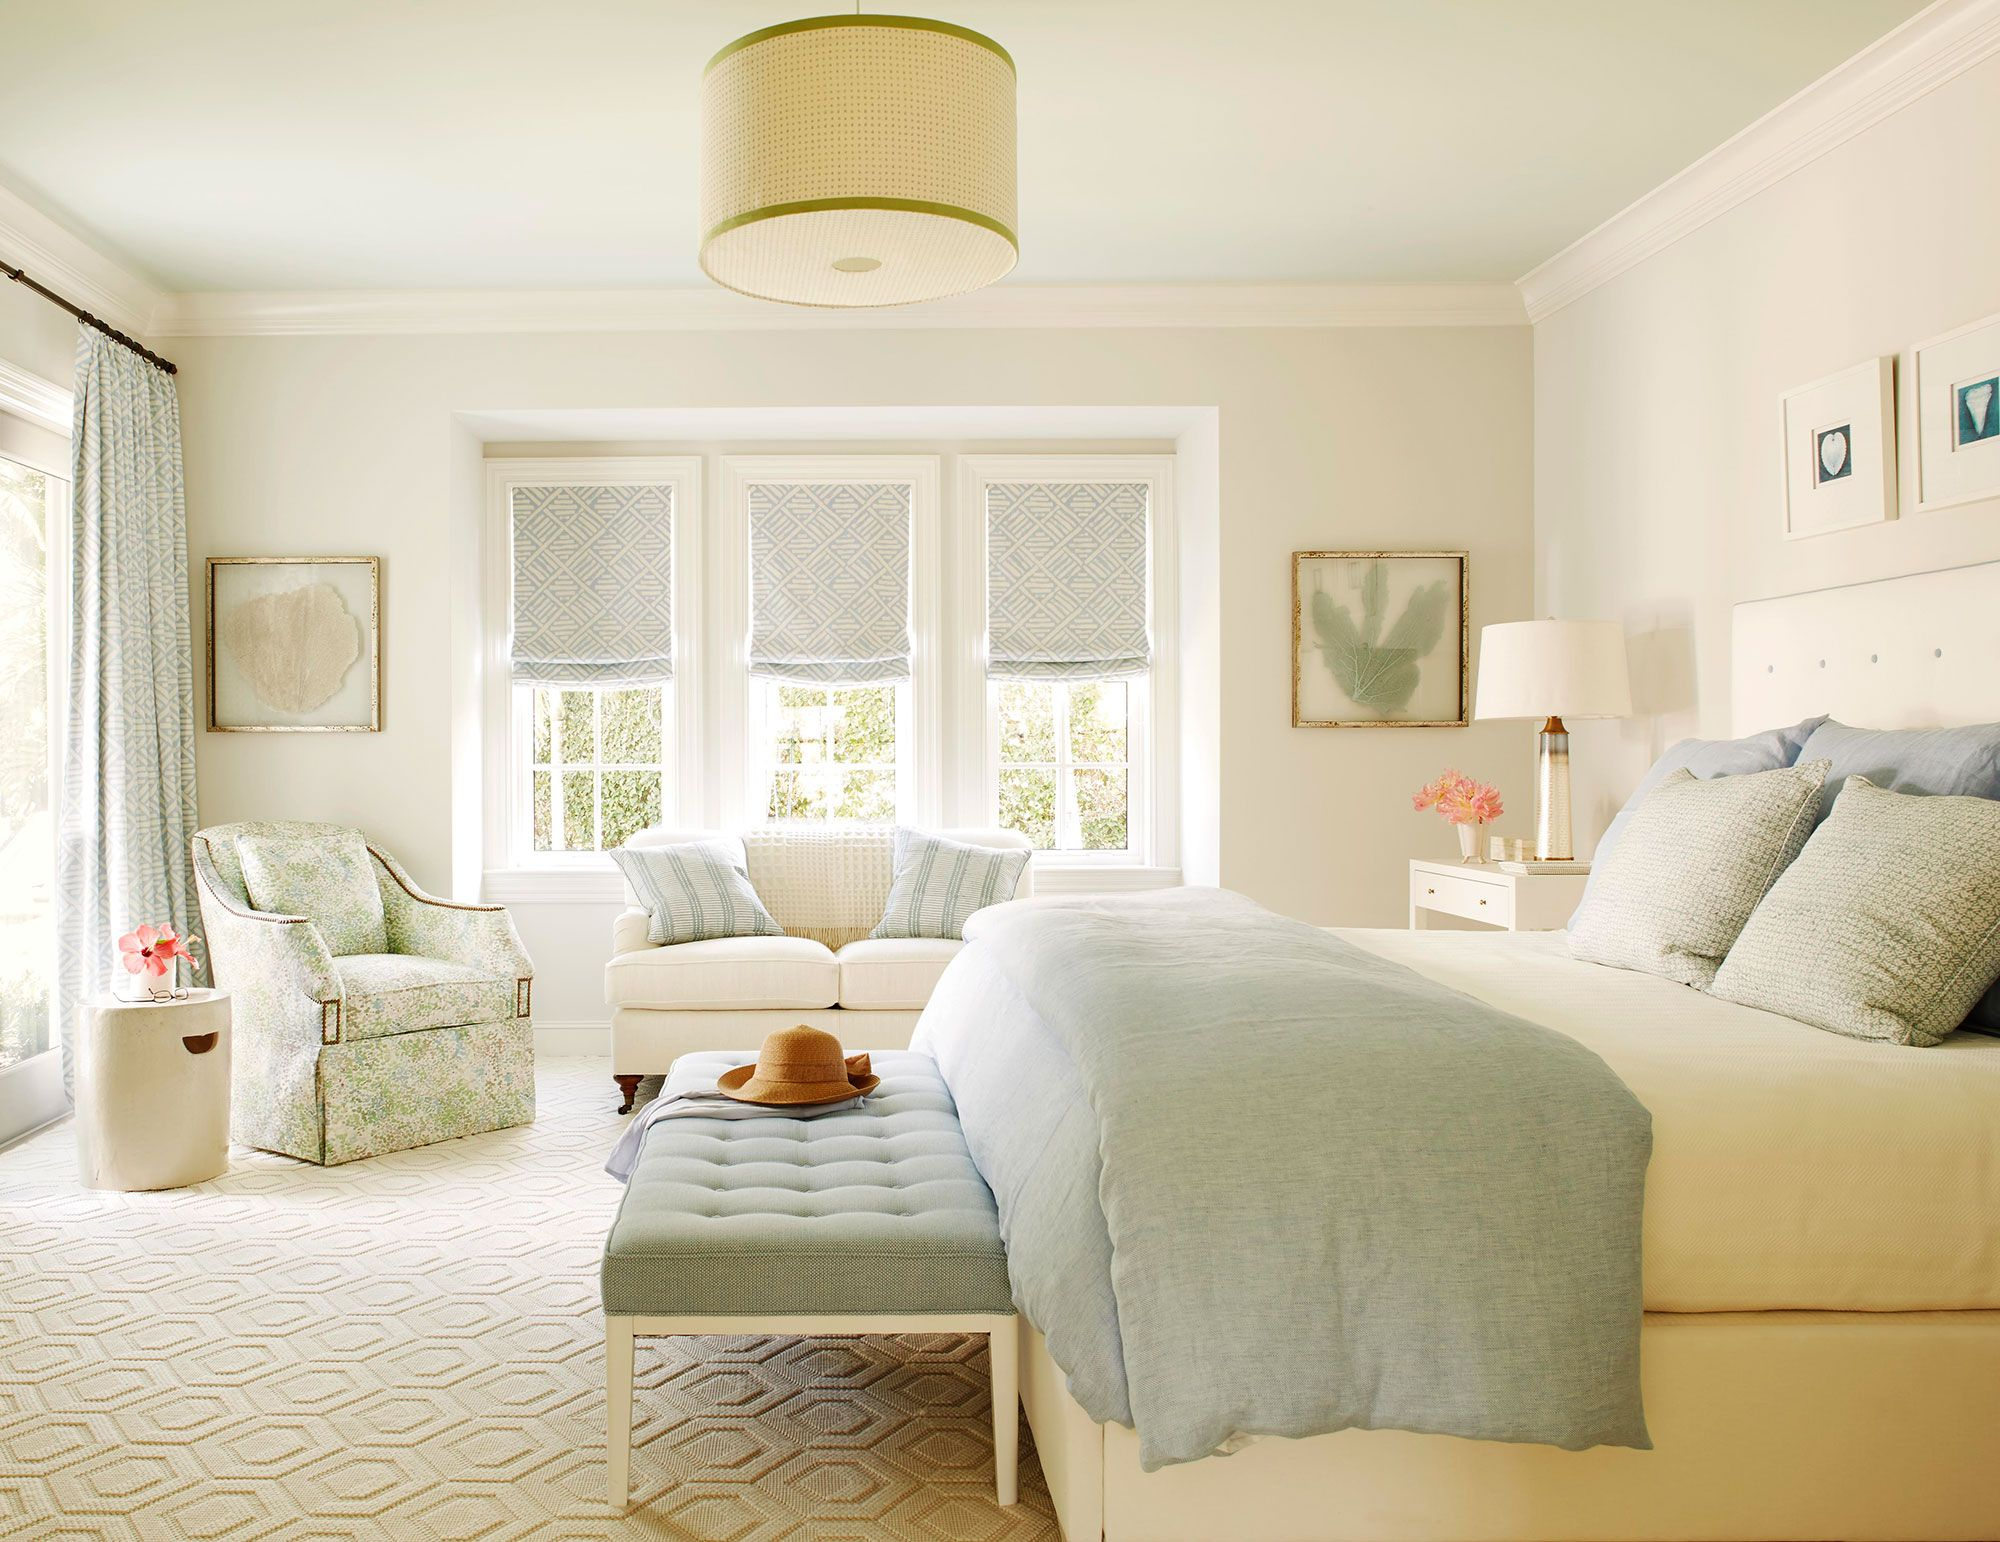 Andrew howard interior design lost tree coastal master - Pictures of beautiful master bedrooms ...